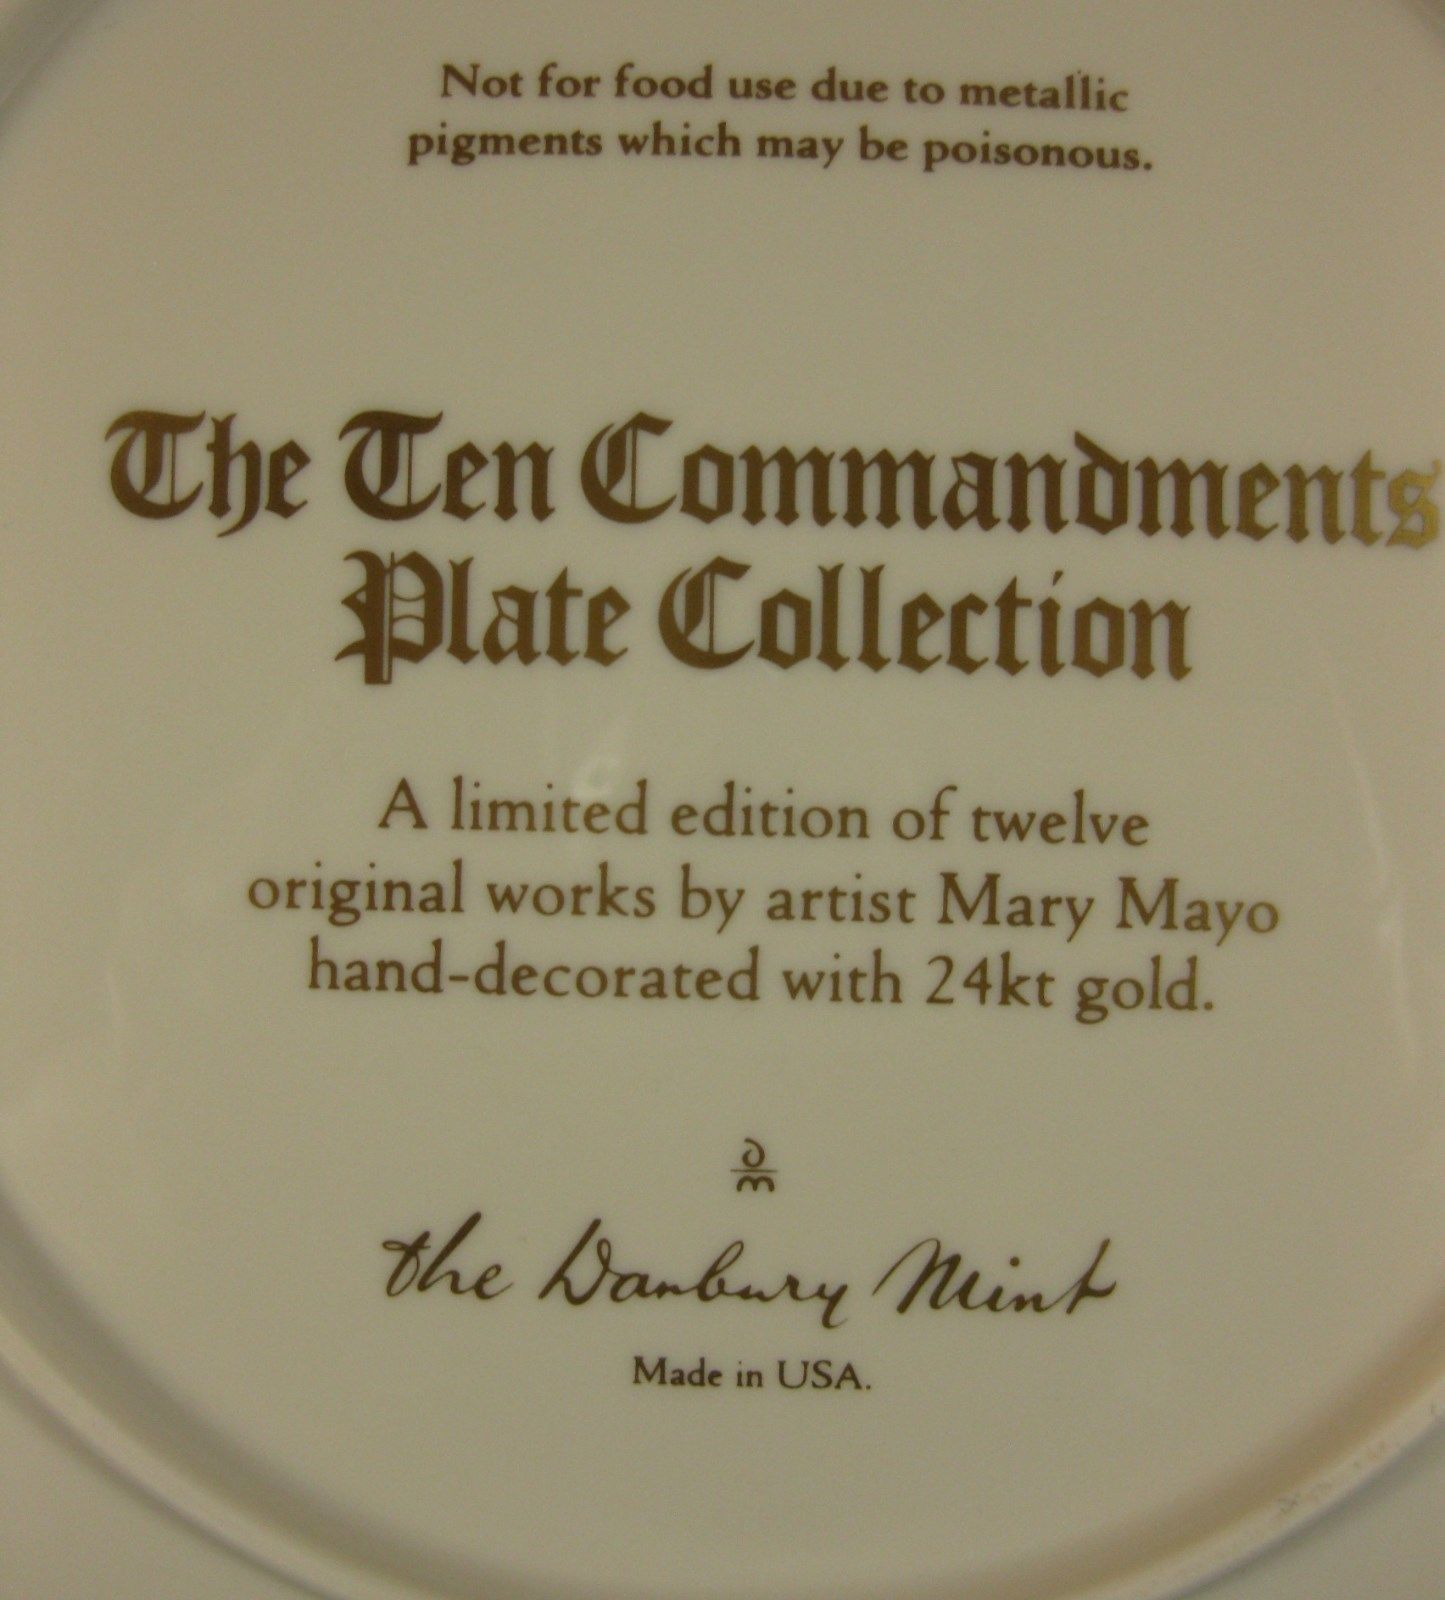 Keep Holy The Lords Day Collector Plate Ten Commandments Mary Mayo Danbury Mint image 4